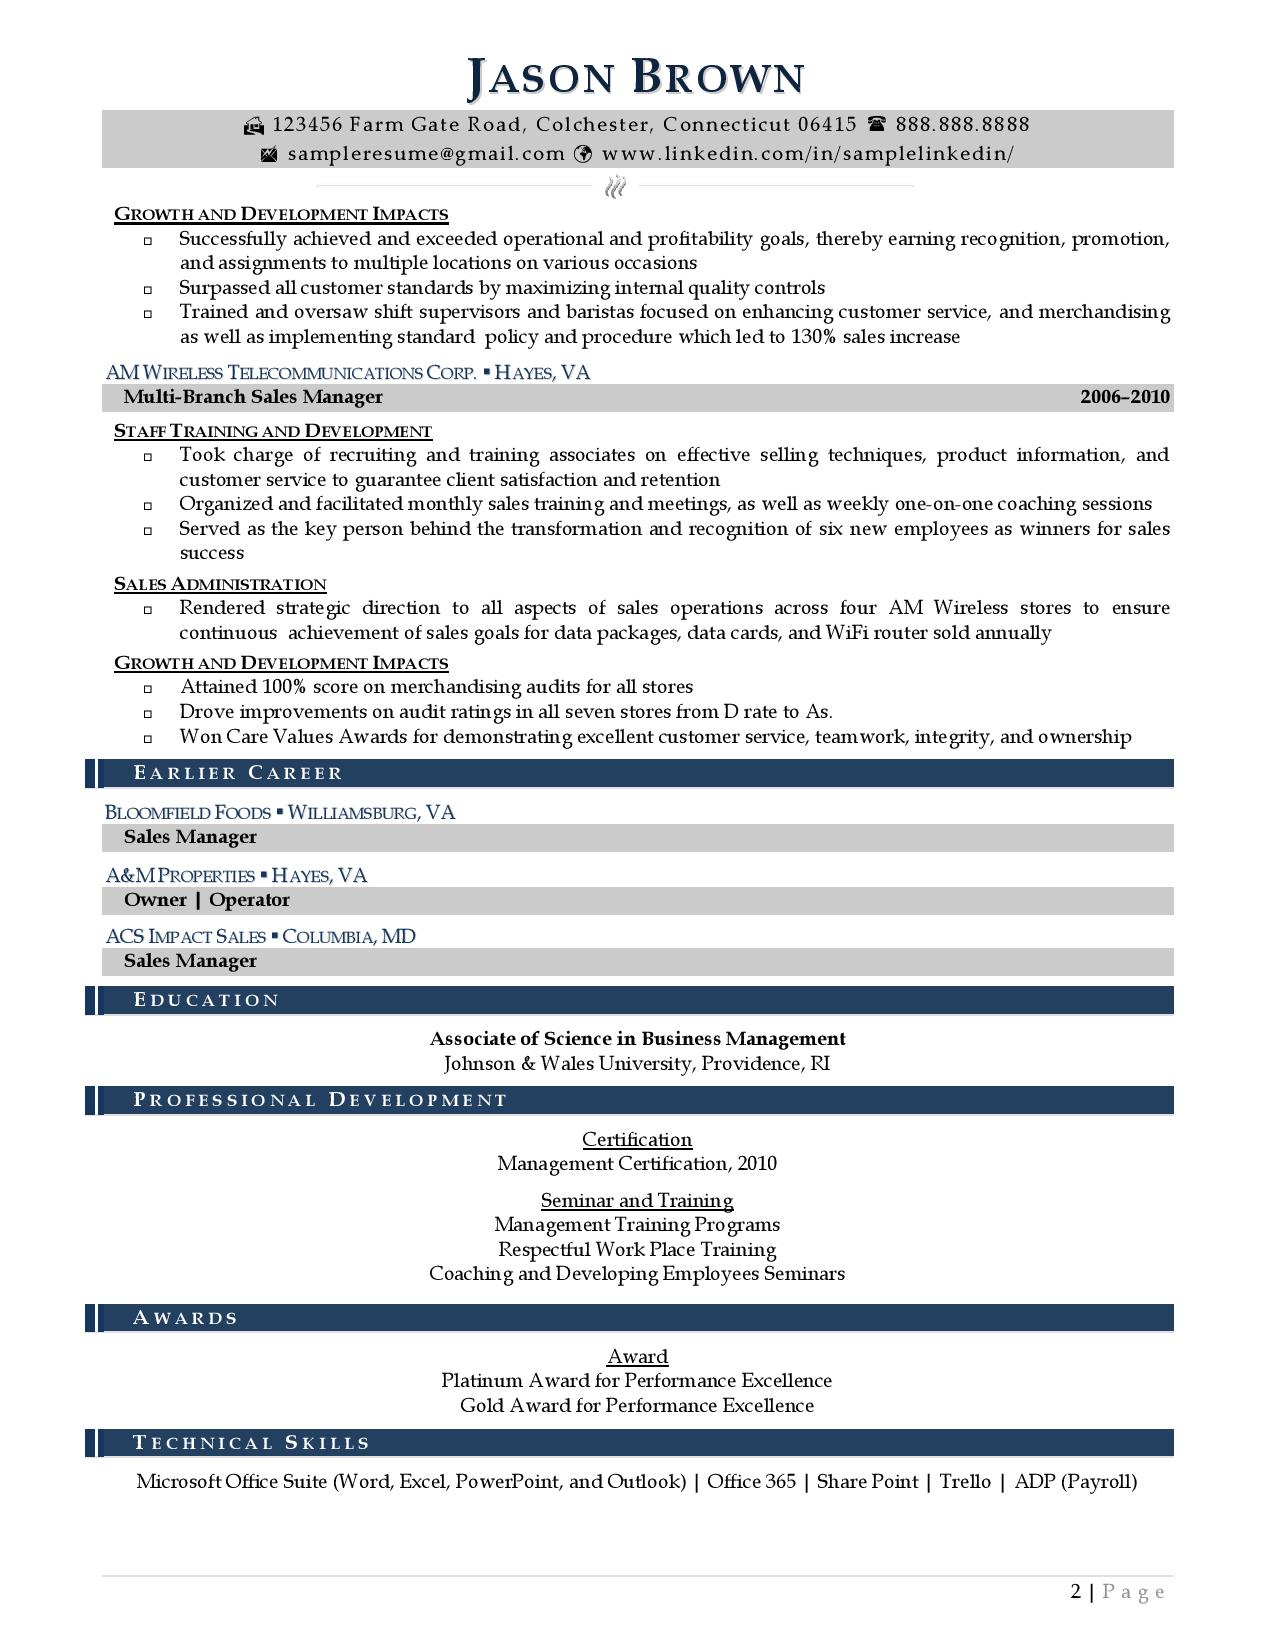 Regional manager resume examples with light color accents page 2